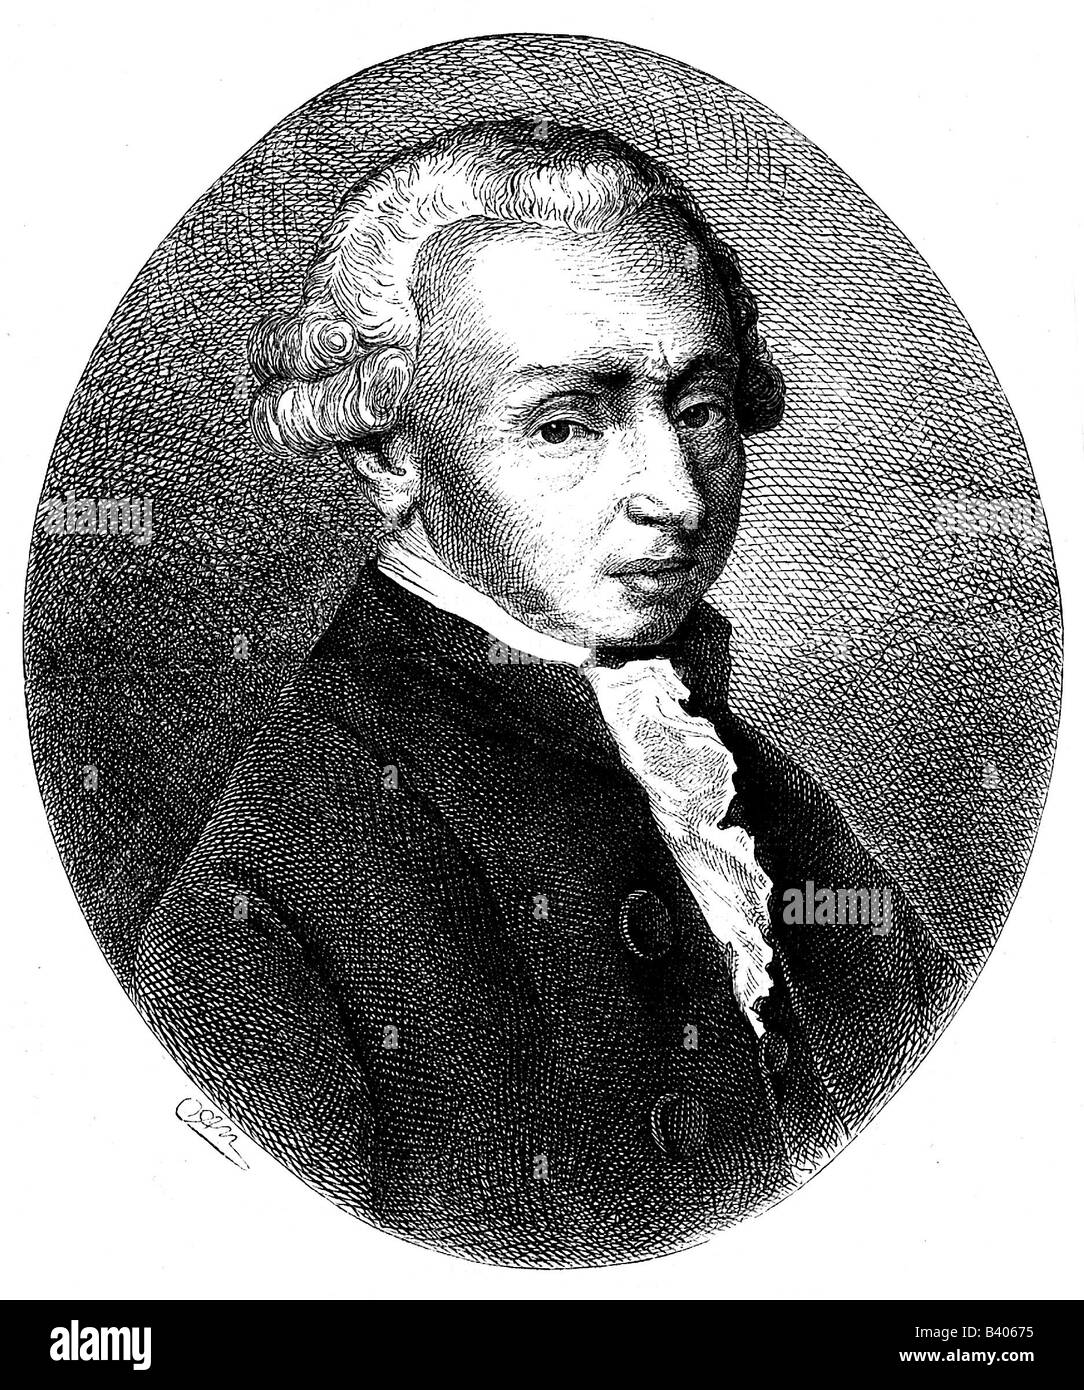 """immanuel kants views on the process of enlightenment Kant's rhetoric of enlightenment - volume 59 issue 1 - michael  this article  examines kant's what is enlightenment and the conflict of the faculties with a  view to  hassner's, pierre article, """"immanuel kant"""" in strauss, and cropsey's,   at best a transitional phase in the process towards republicanism."""